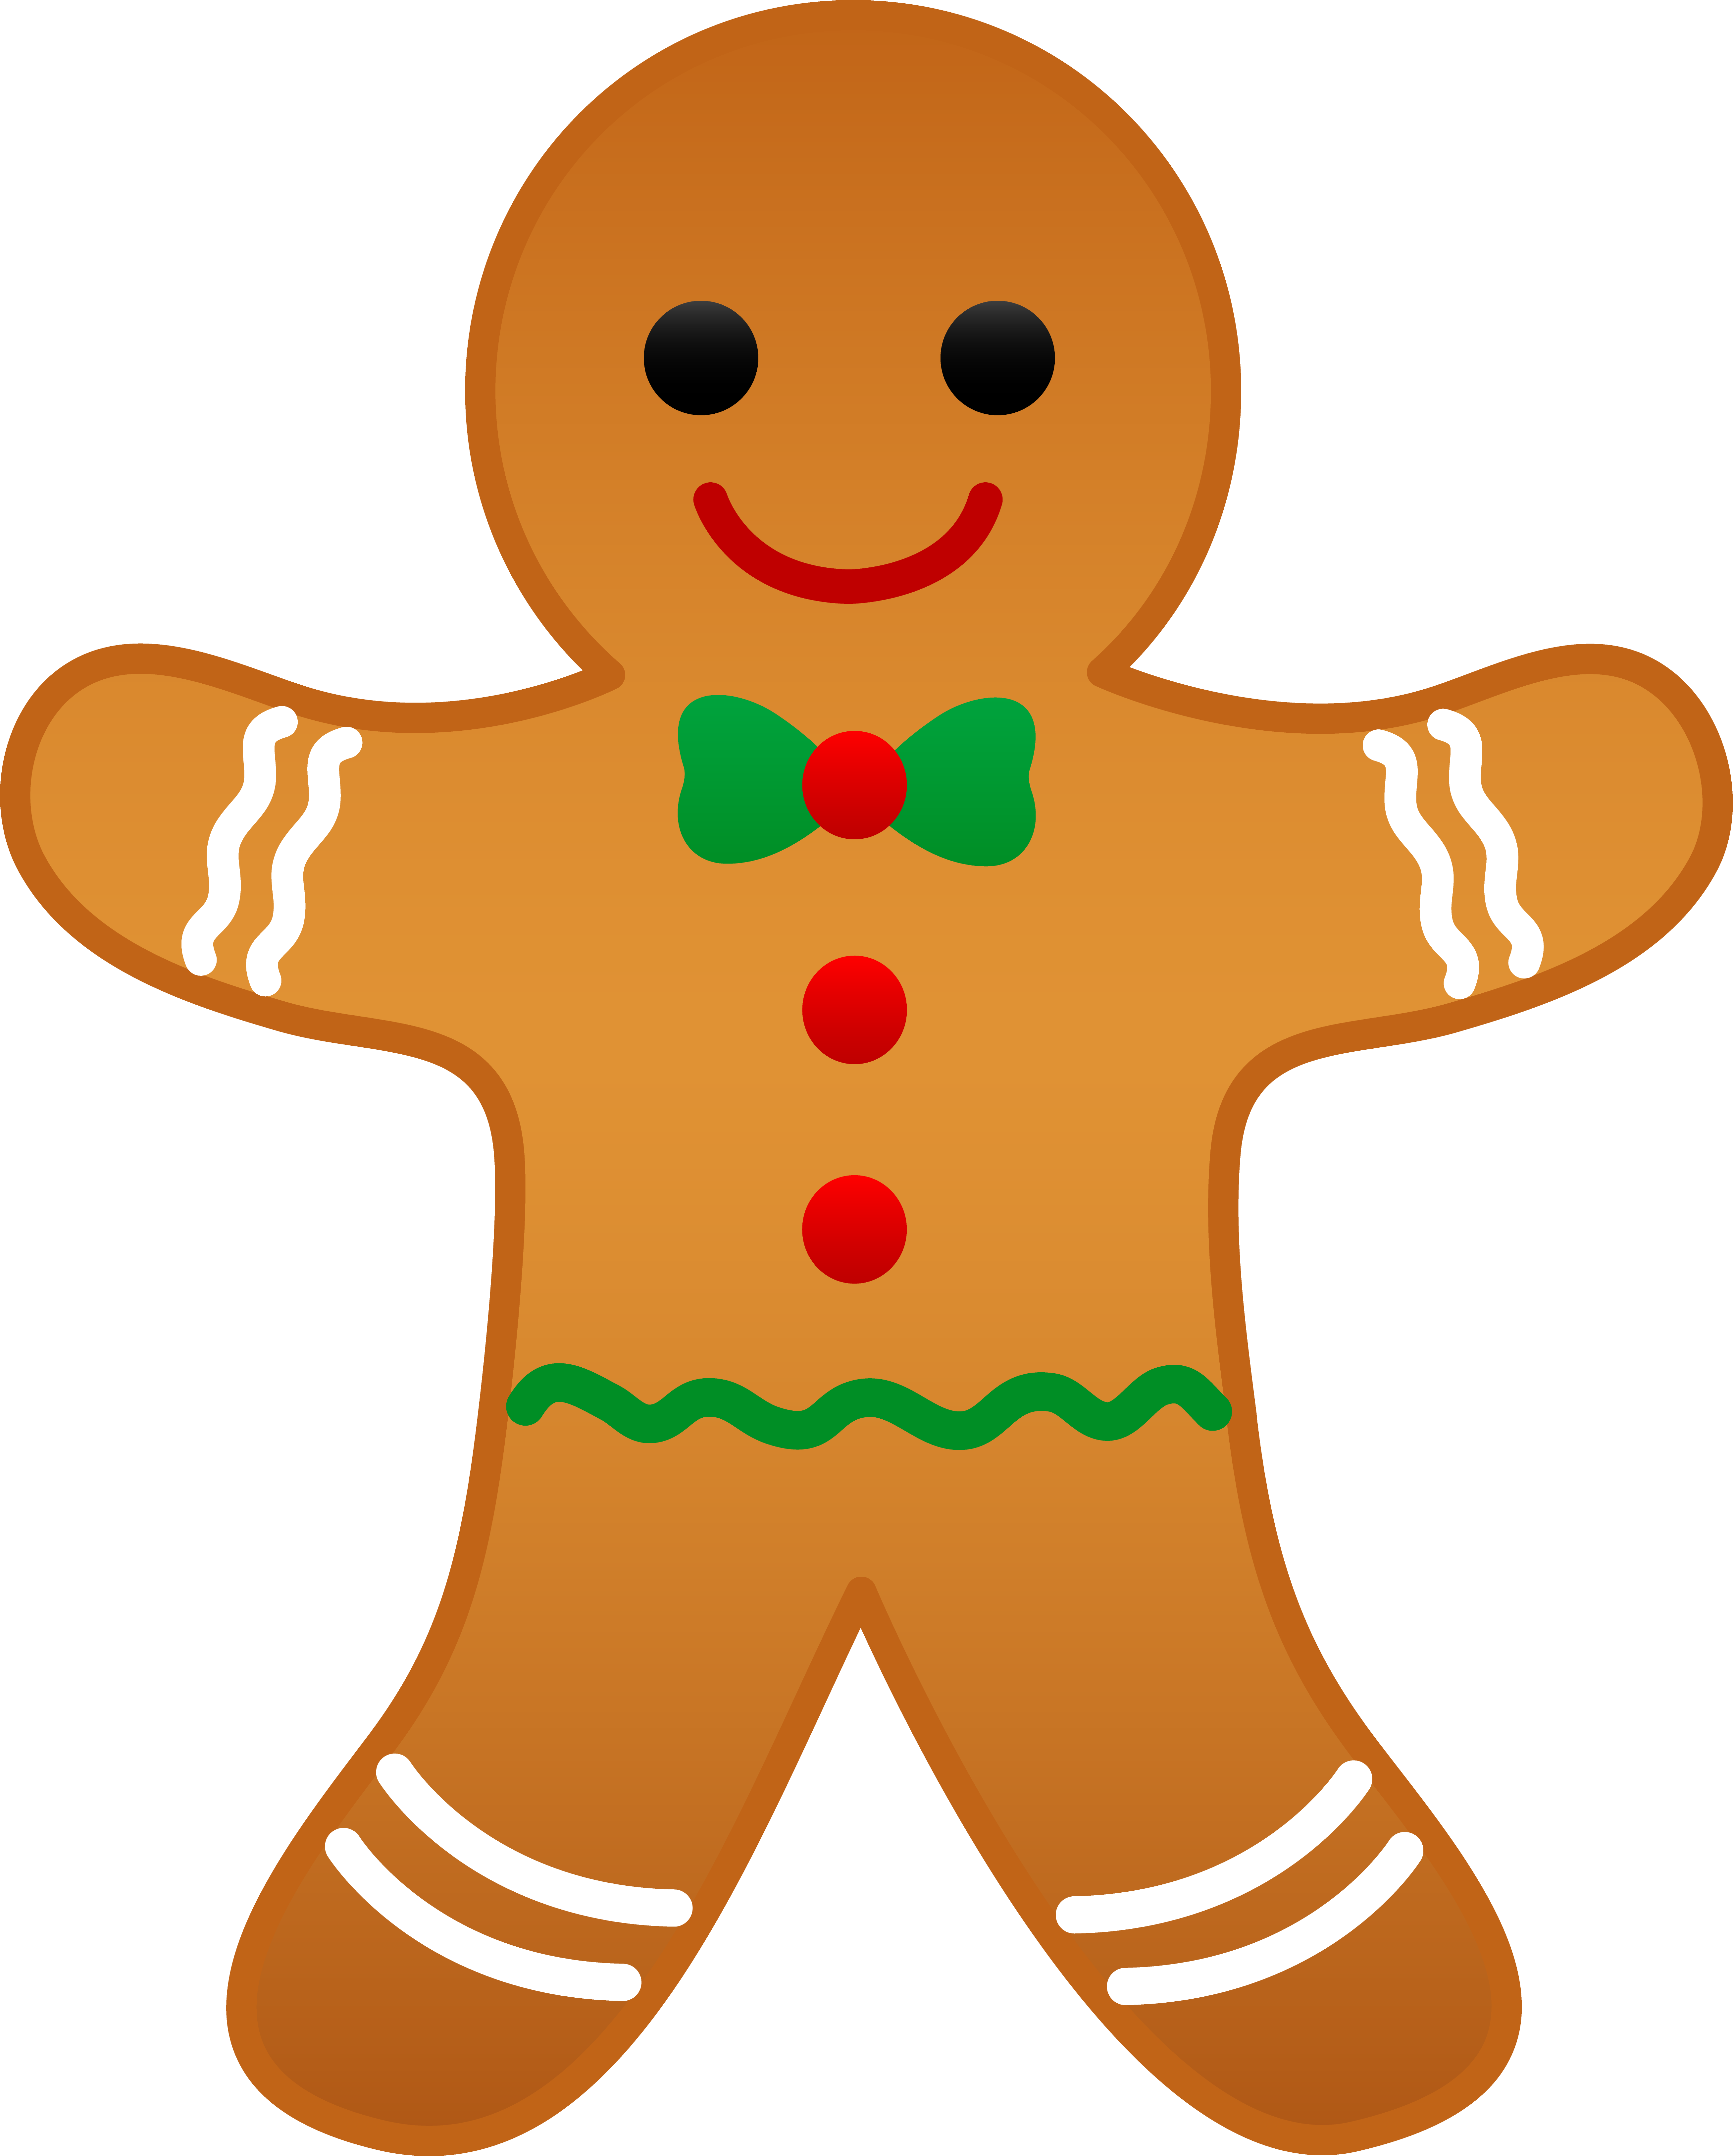 The gingerbread man clipart vector black and white stock Free Images Of Gingerbread Man, Download Free Clip Art, Free ... vector black and white stock